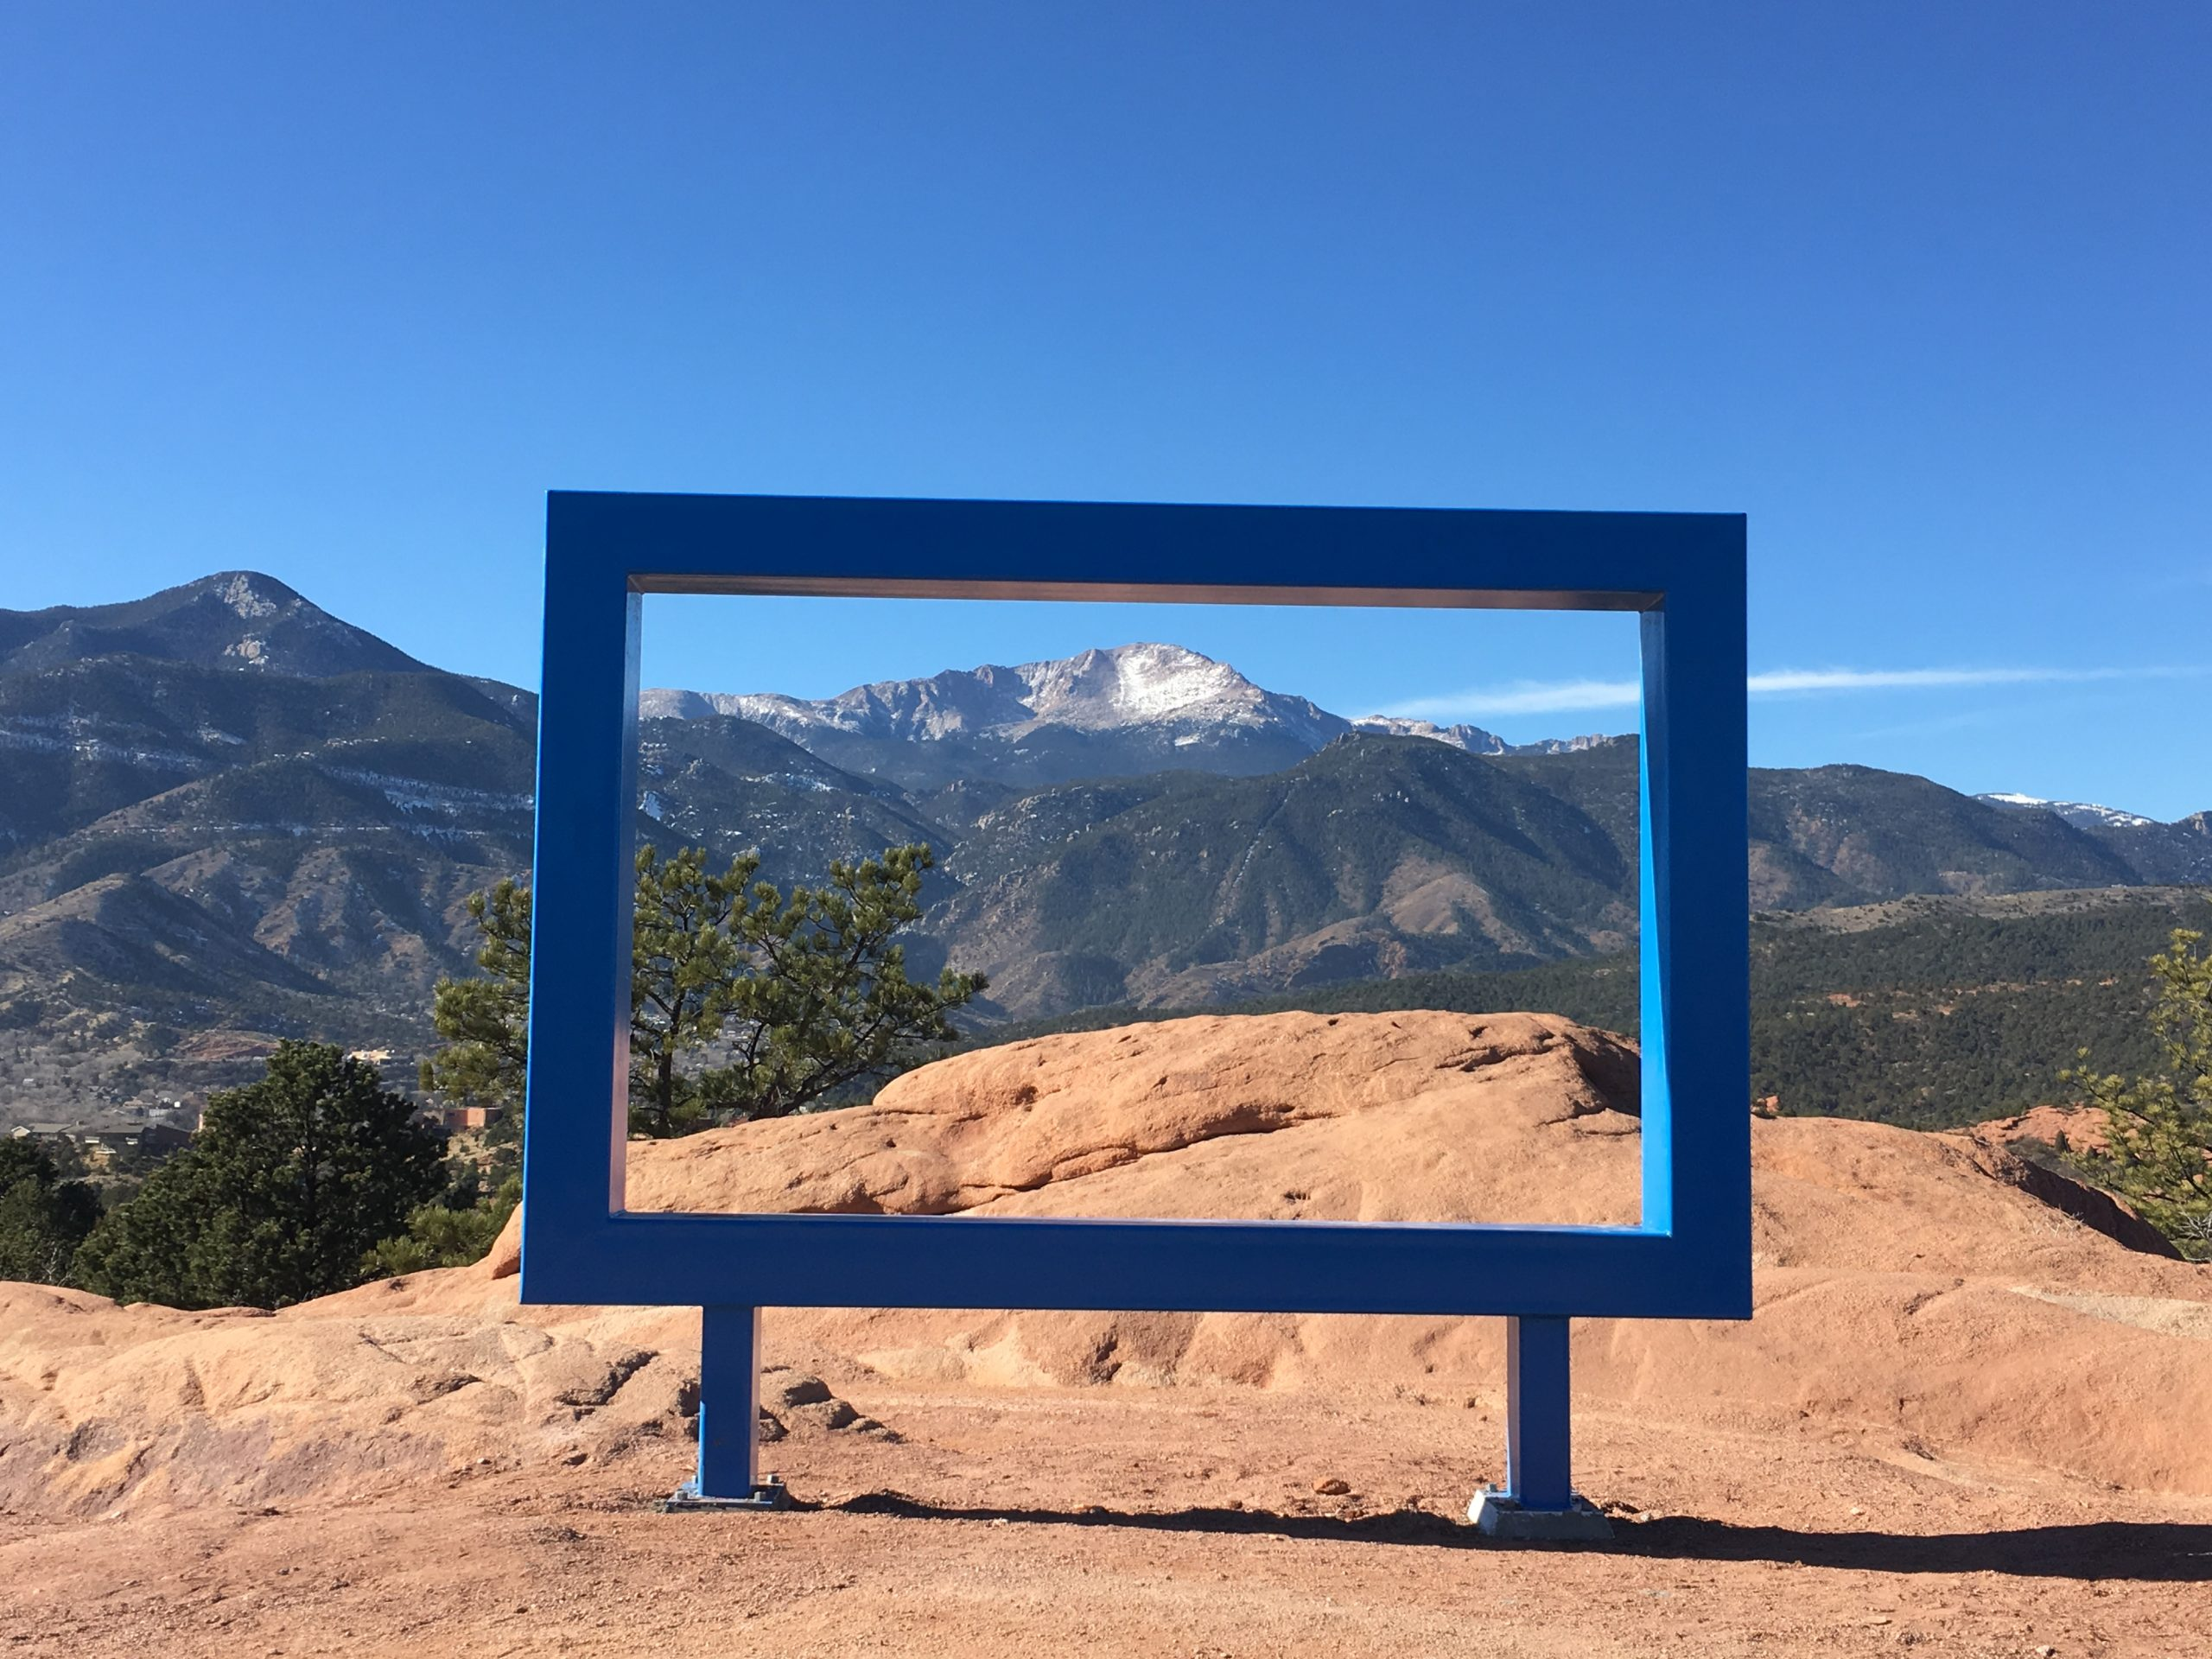 The view through a newly-installed large metal frame at Garden of the Gods, taken from a crouched position at the edge of the High Point Overlook parking lot.